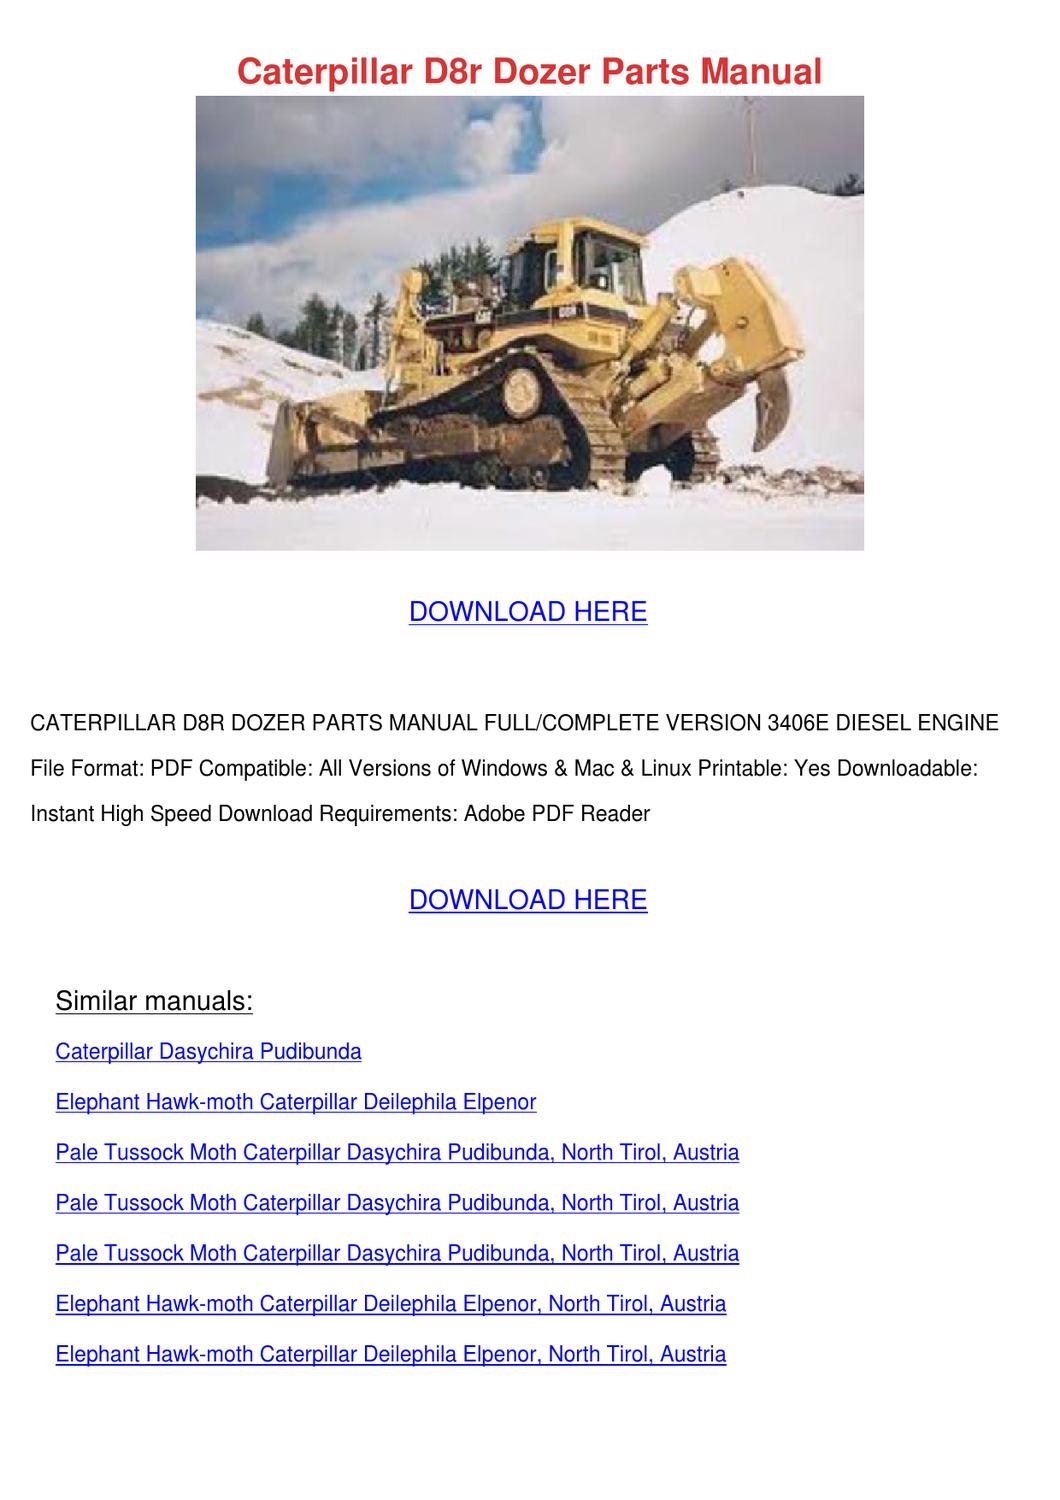 Caterpillar D4e Transmission Shop manual